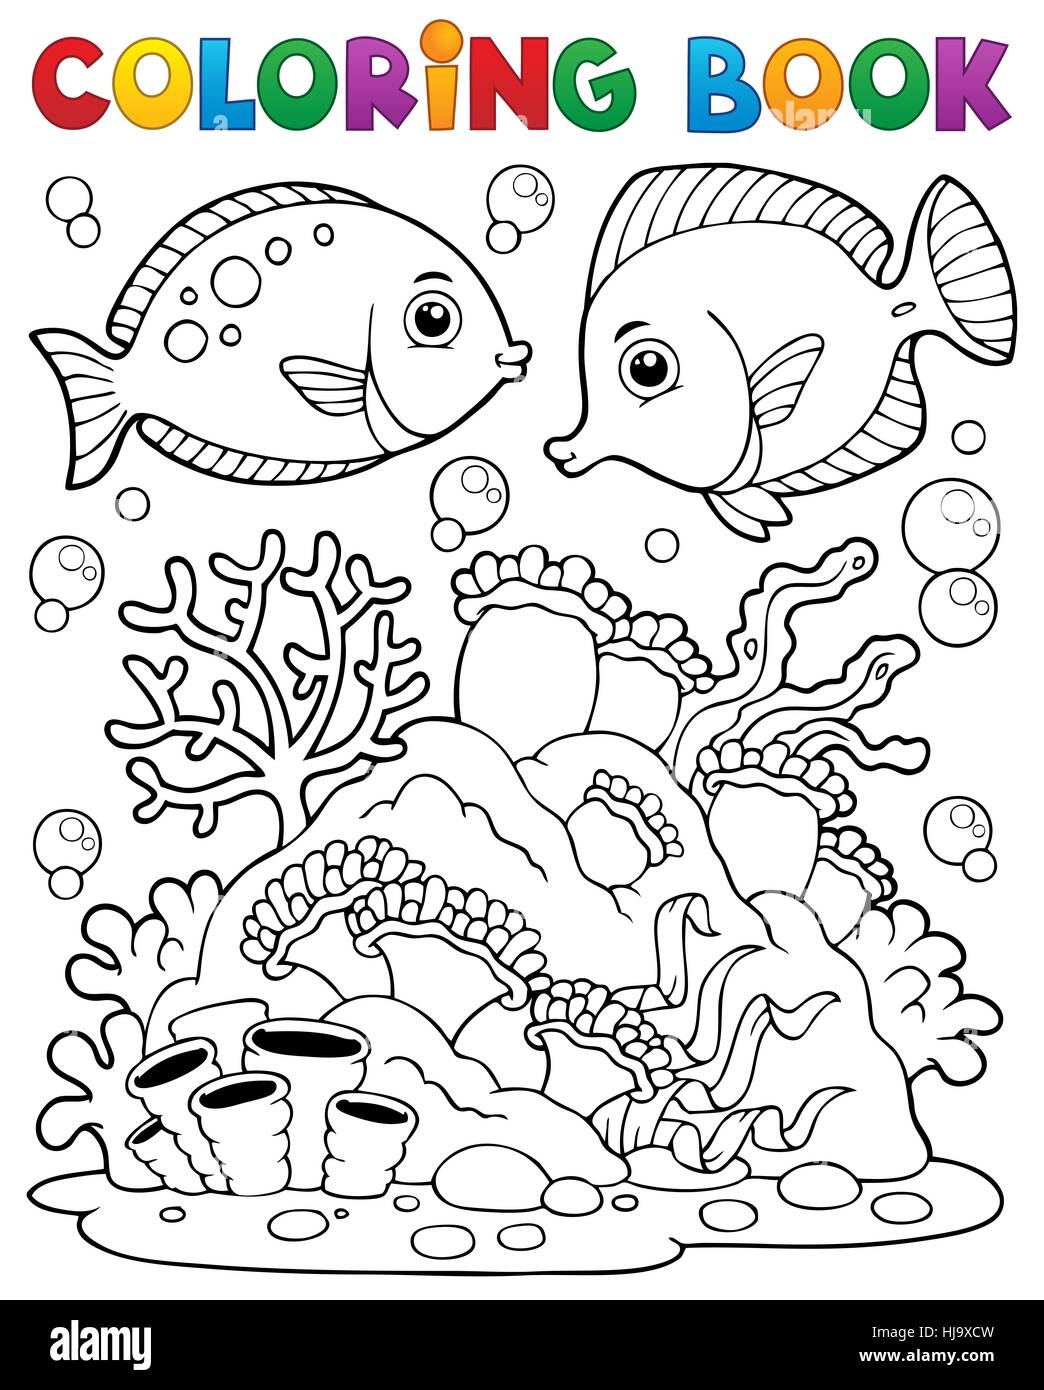 Coloring book coral reef theme 1 - picture illustration. - Stock Image